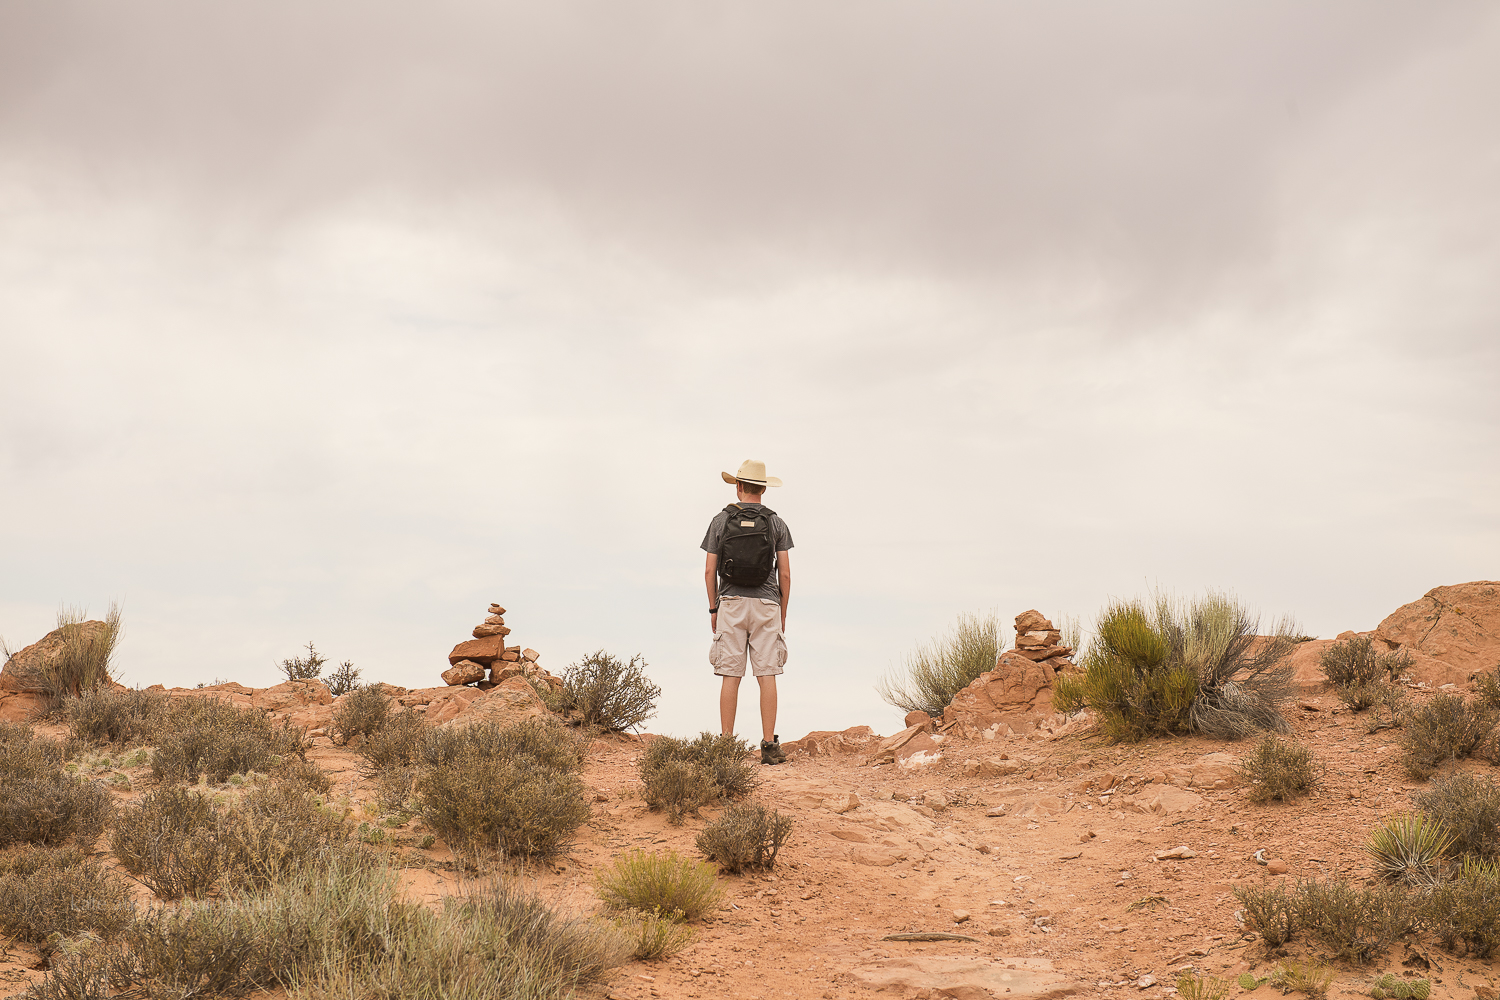 day37_murphytrail-canyonlands_moab201620160802-2.jpg